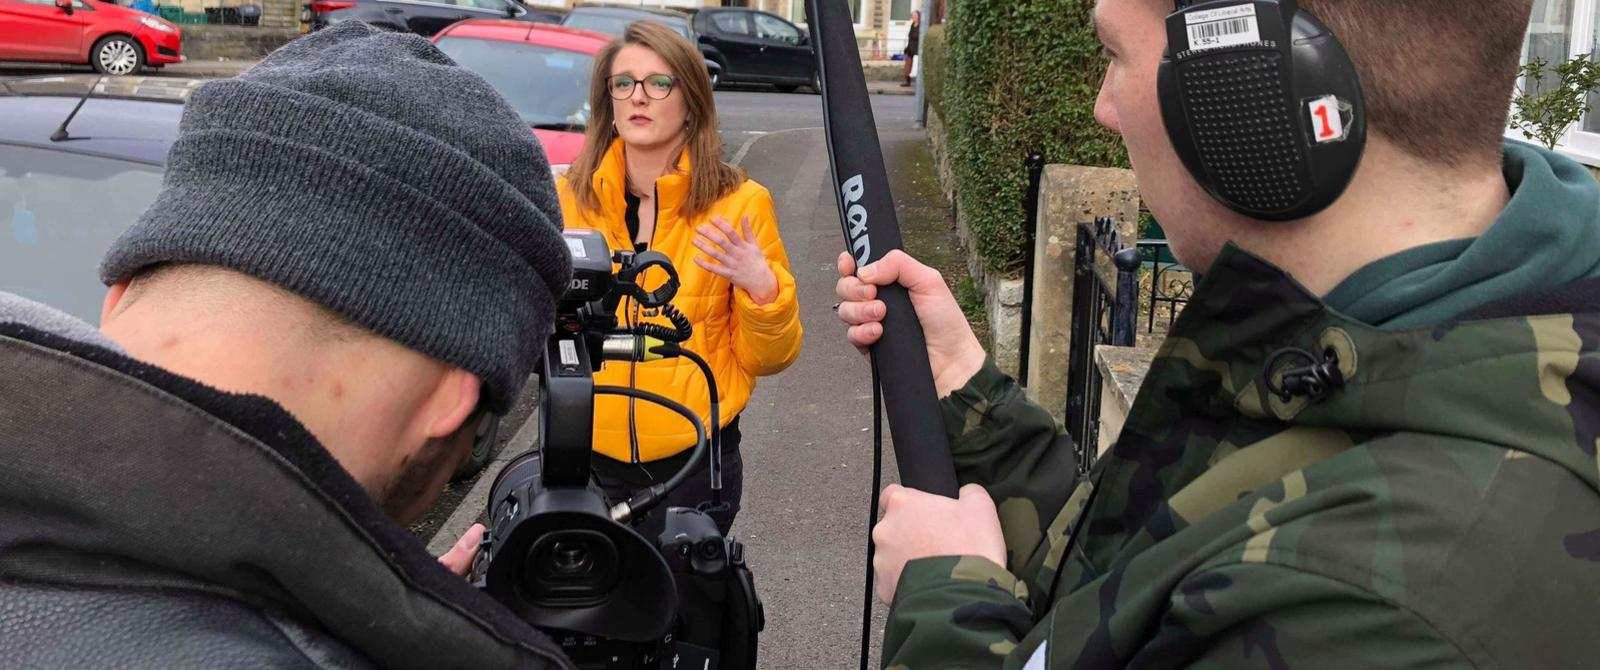 image:student filming in Bath